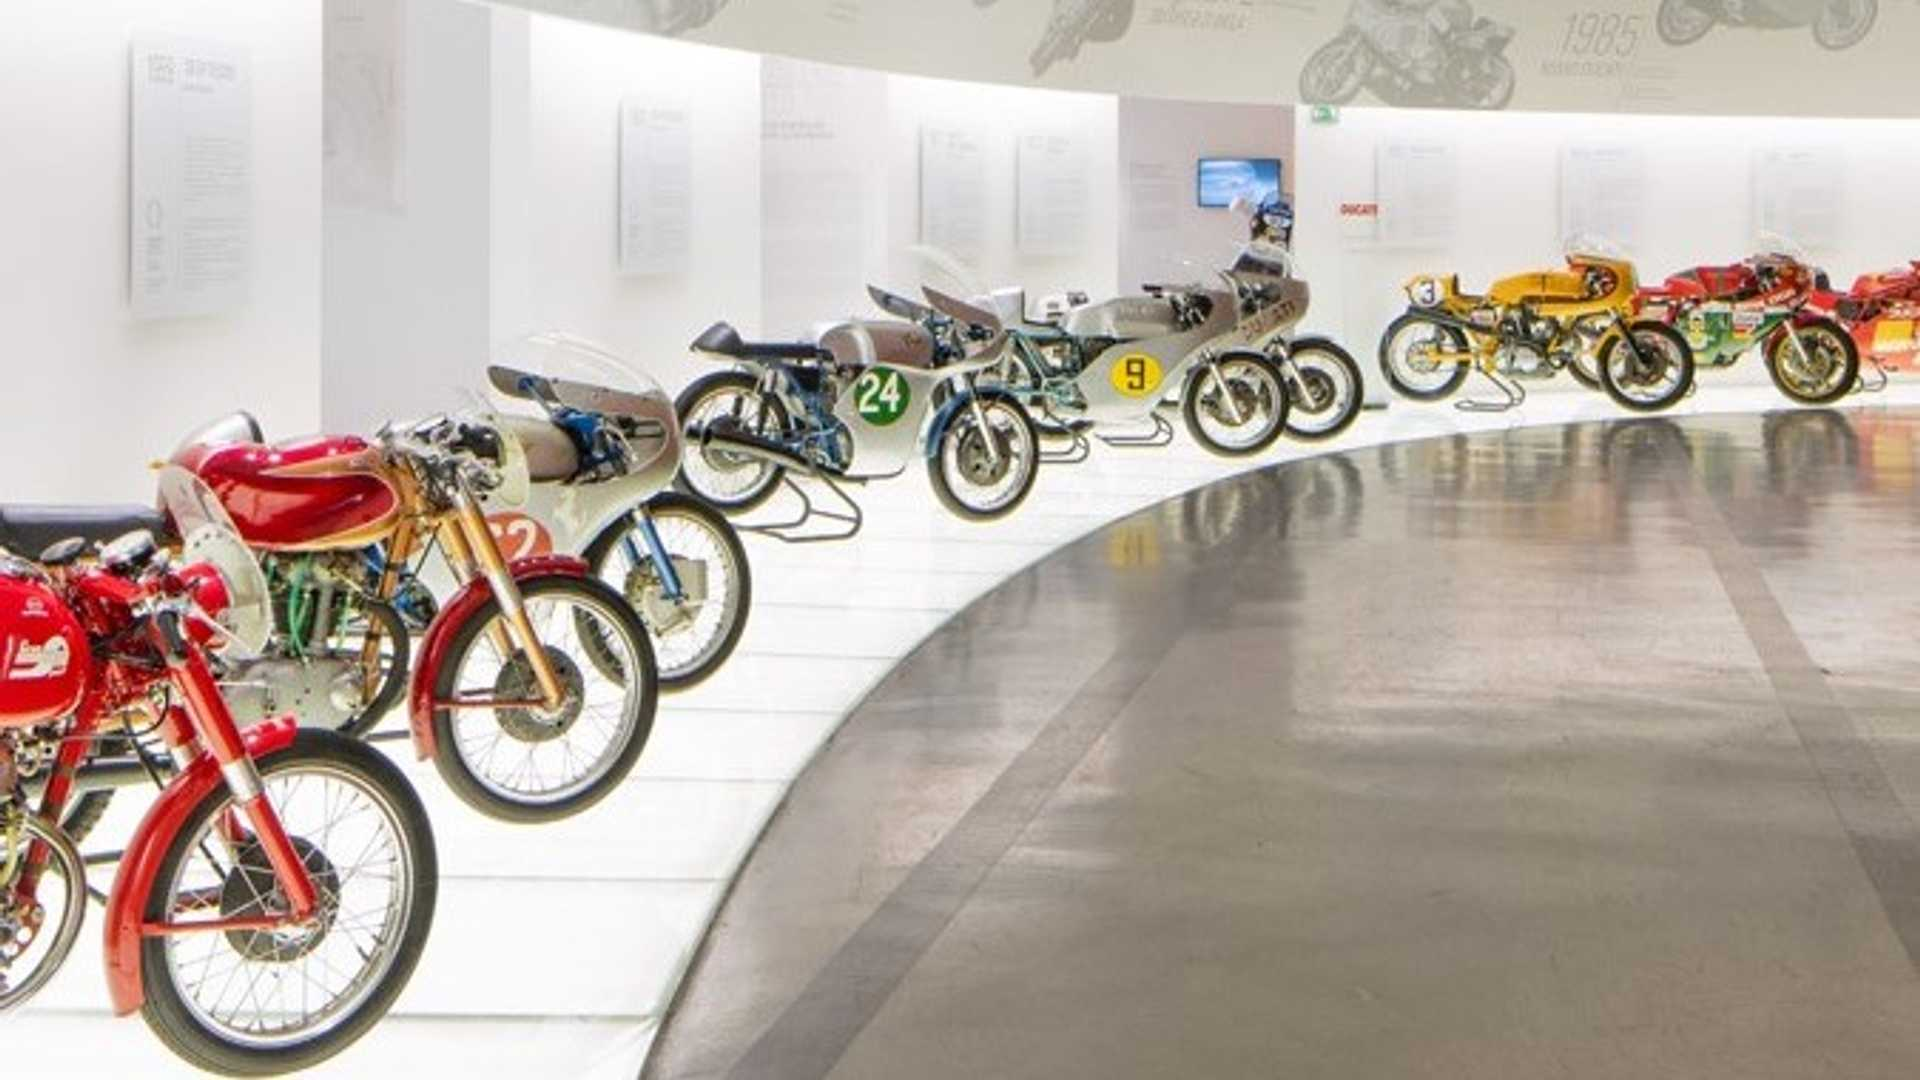 Visit These Motorcycle Museums From The Comfort Of Your Couch